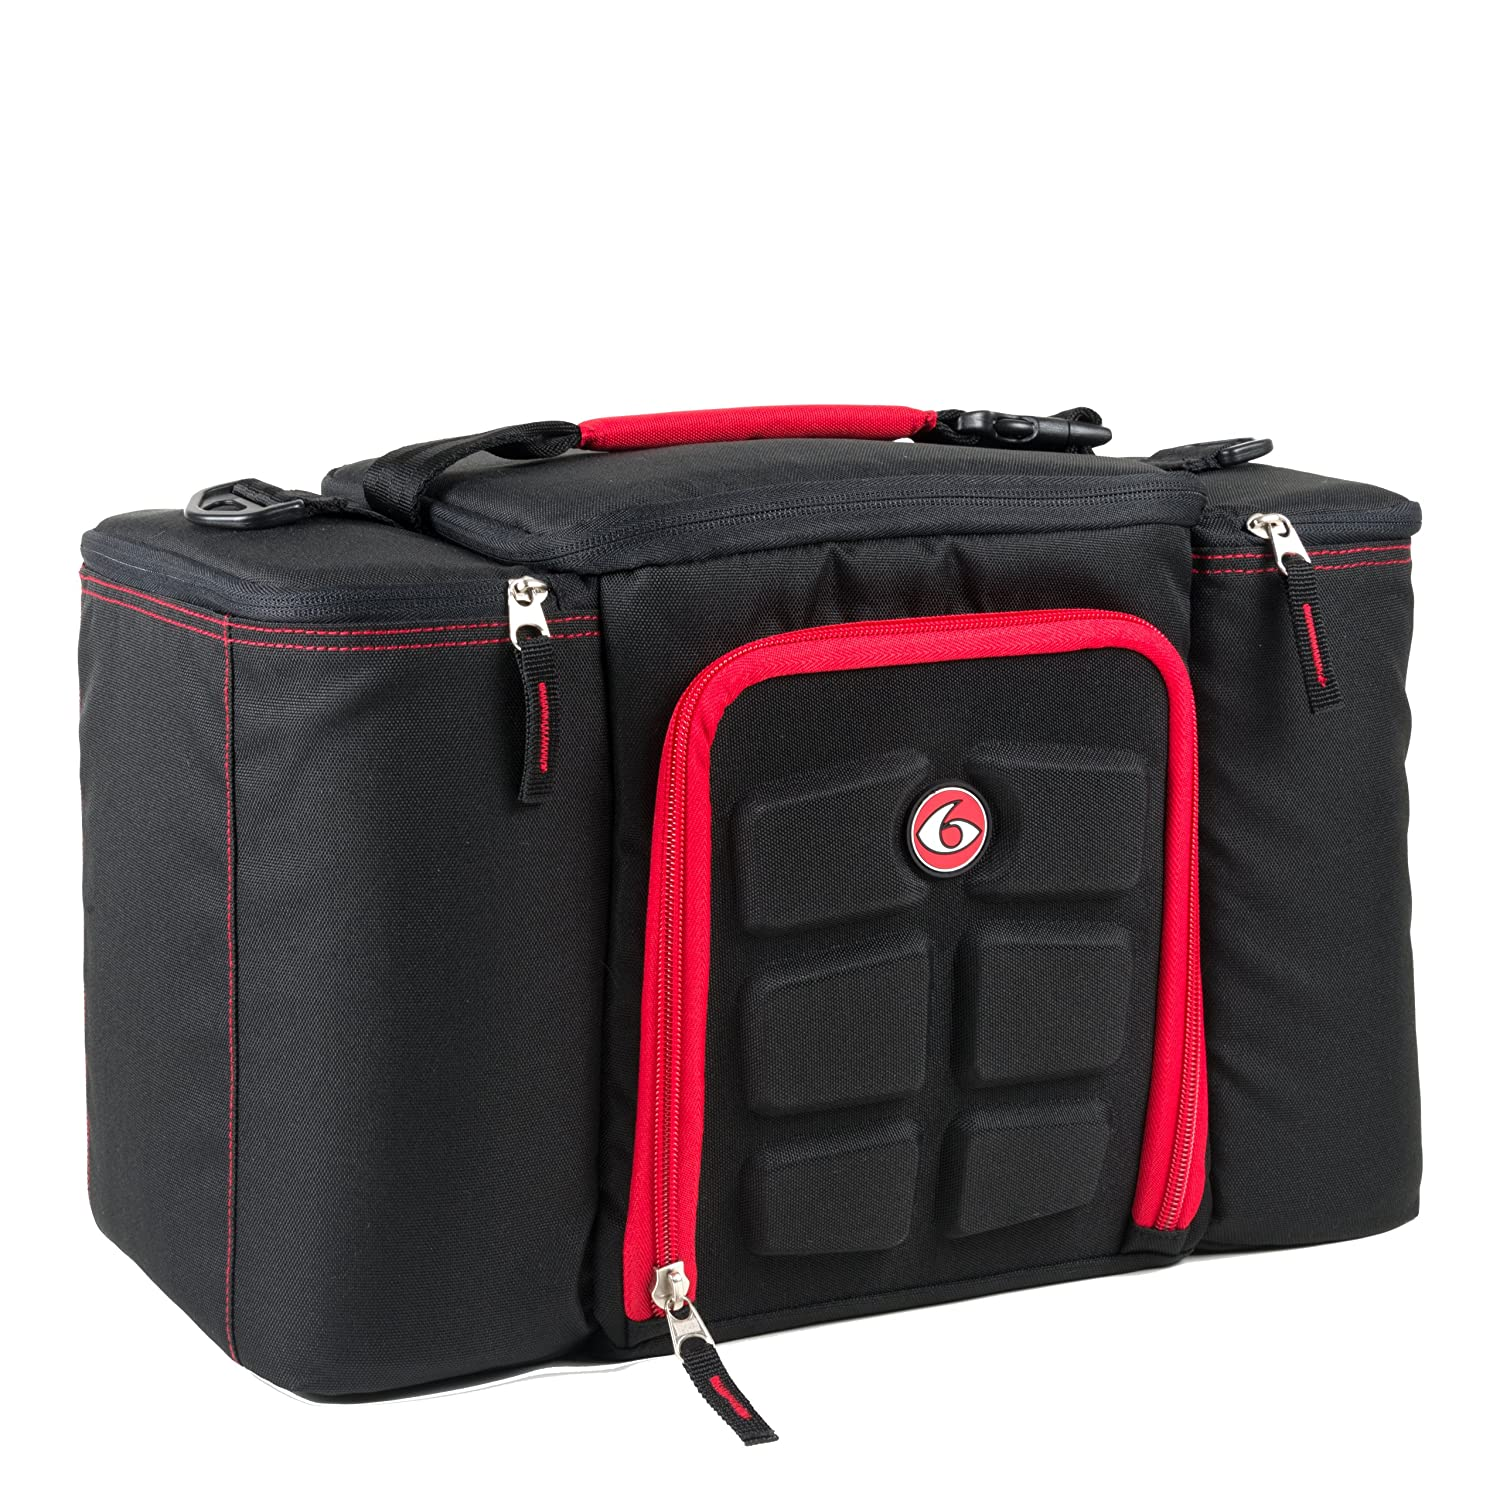 Six pack fitness bags